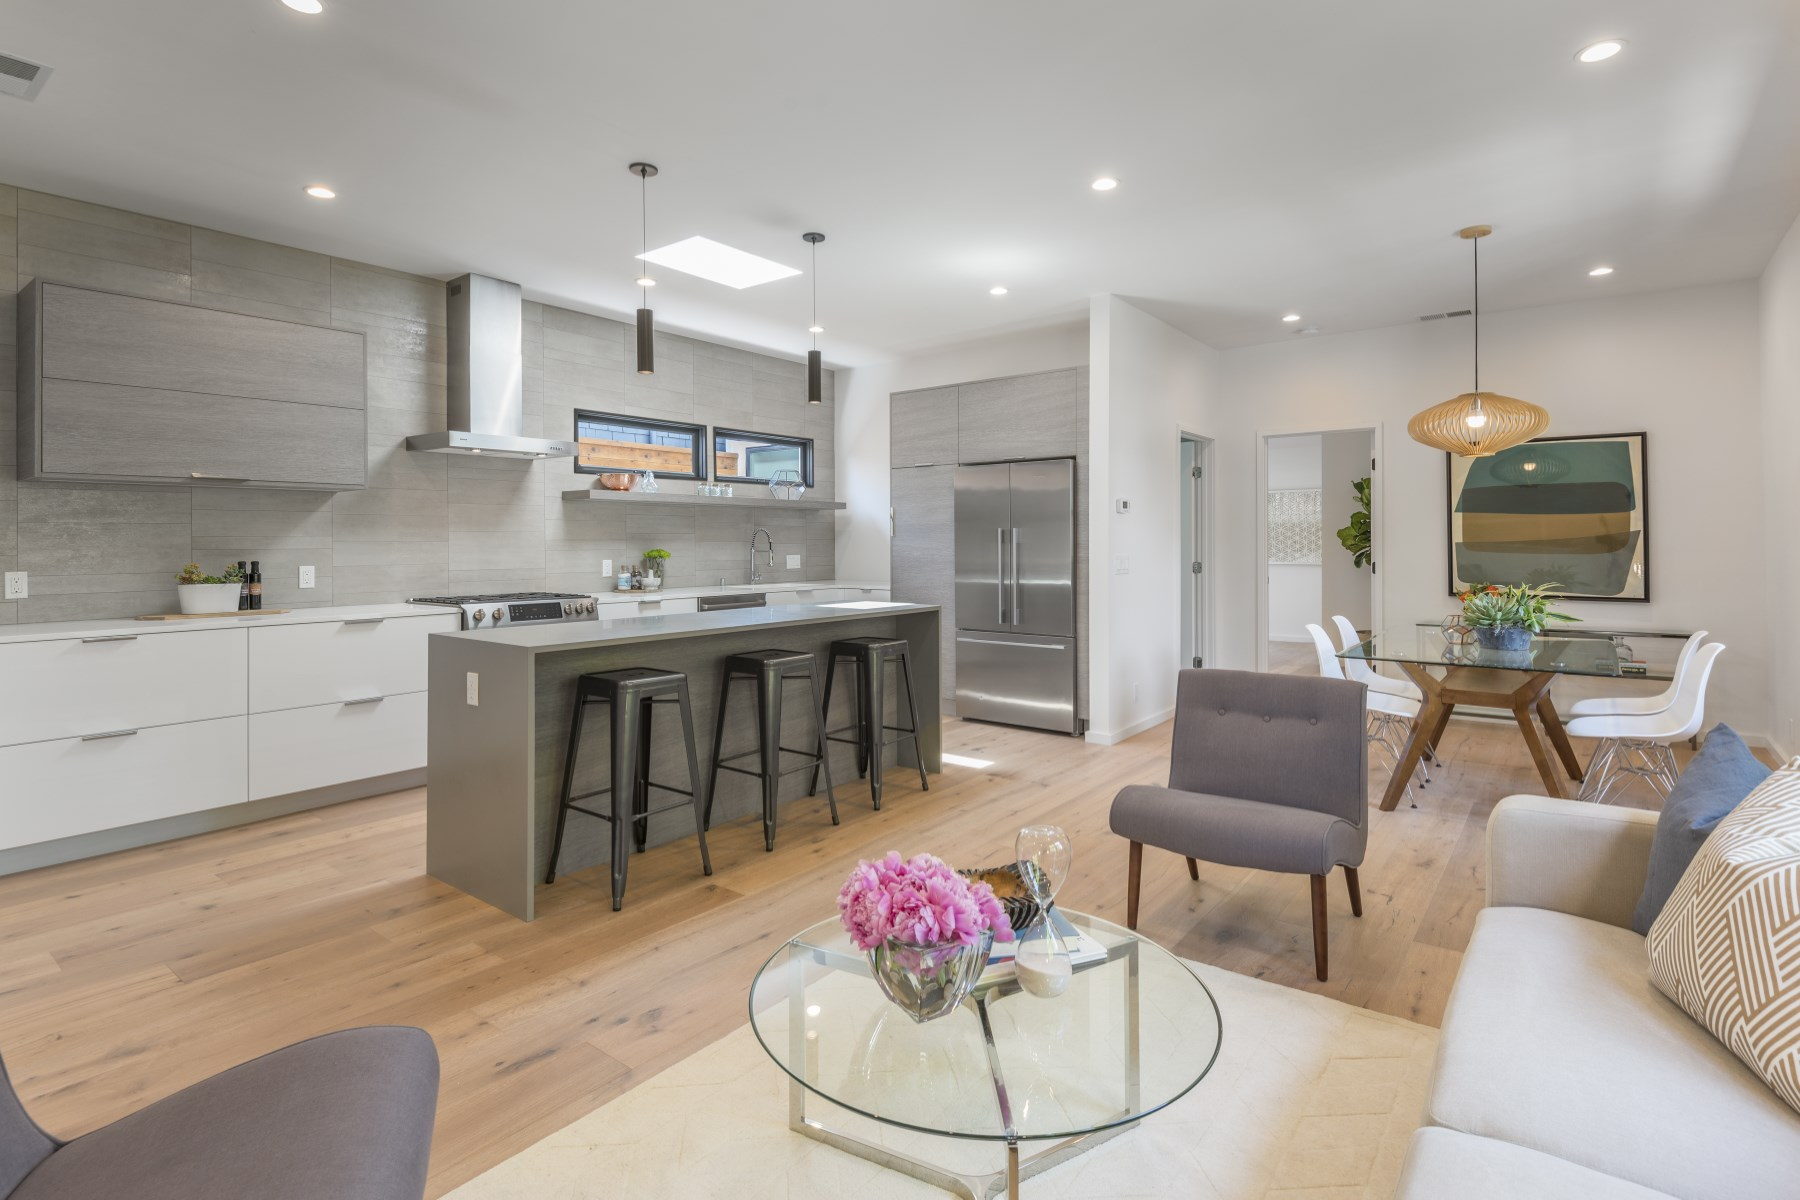 Single Family Home for Sale at Re-Imagined Elegance in Bernal Heights 600 Gates St Bernal Heights, San Francisco, California, 94110 United States